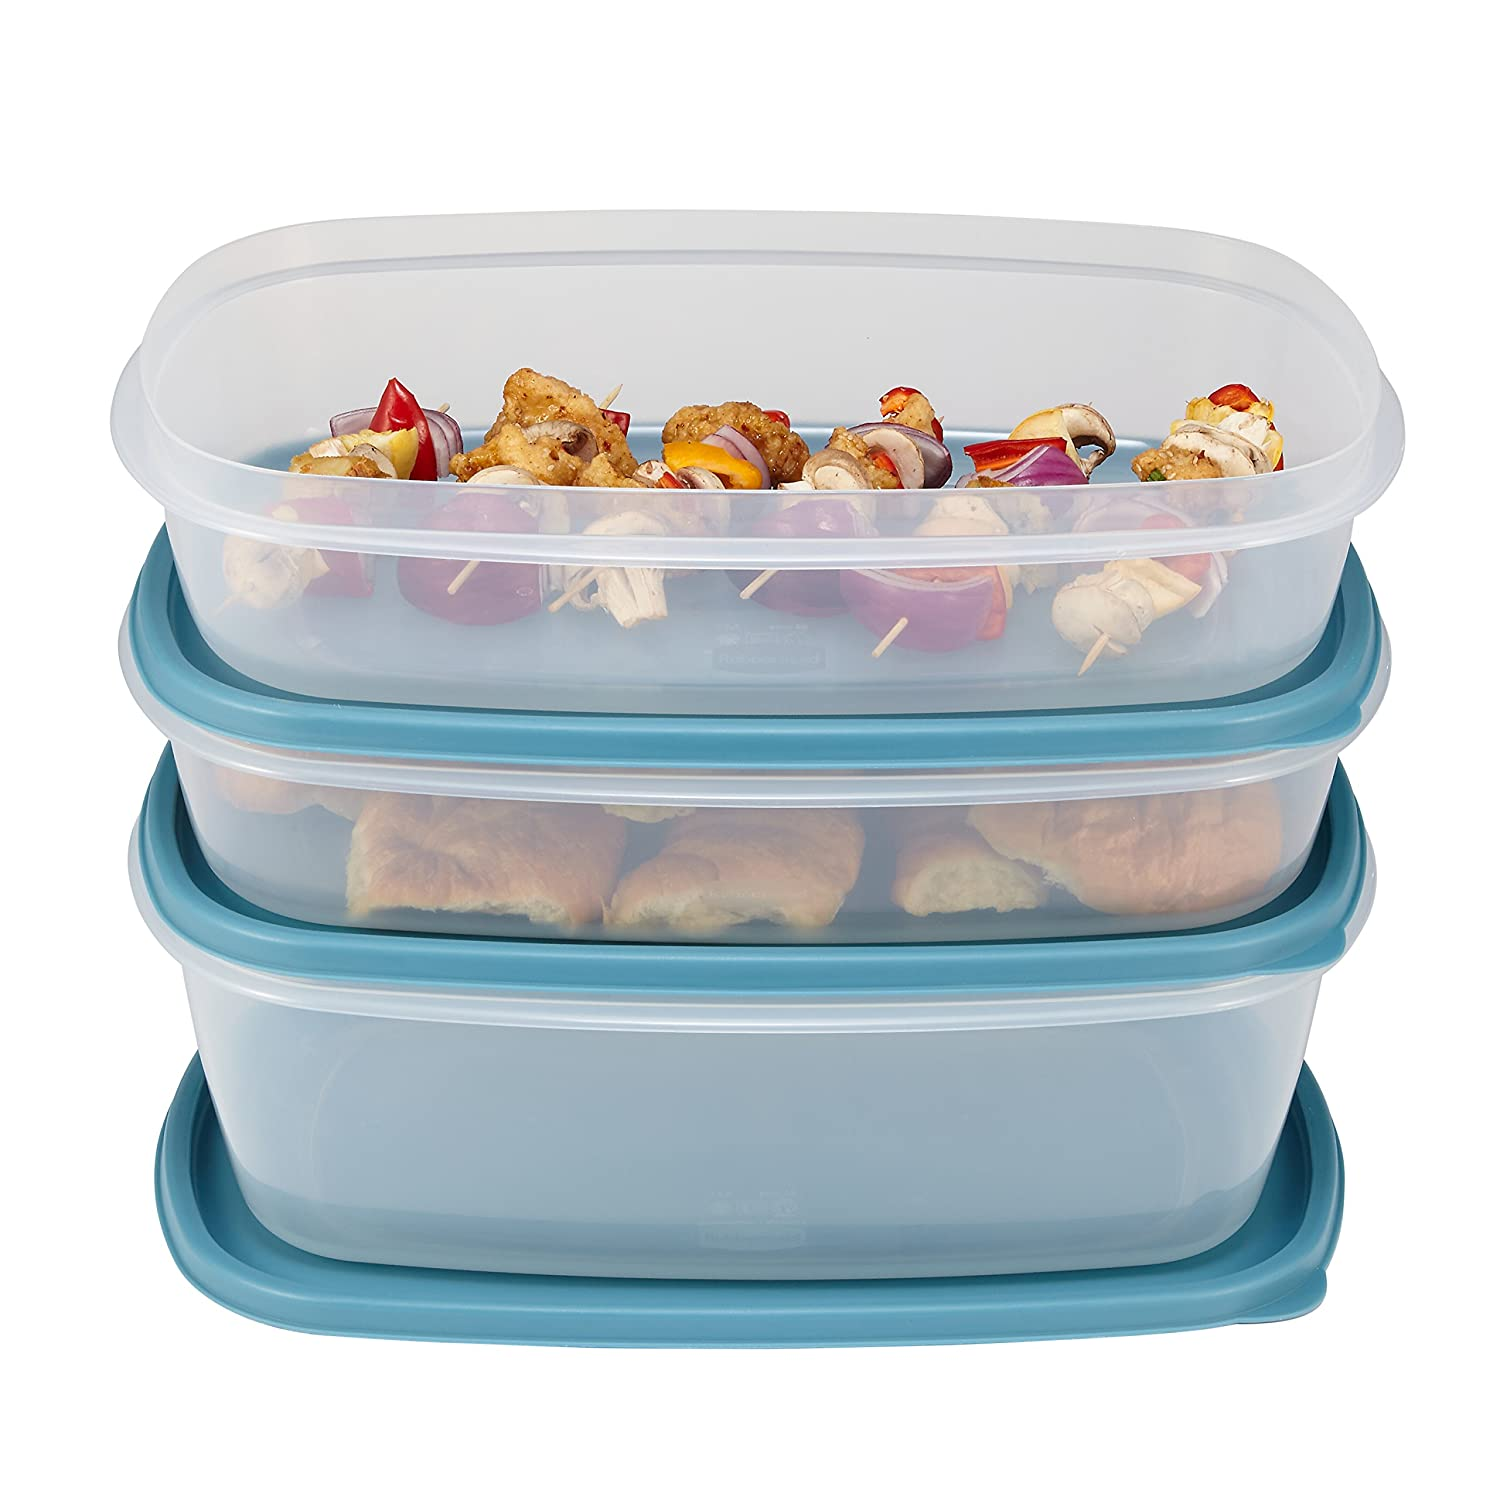 Rubbermaid Easy Find Lids Food Storage Containers, Arctic Blue, 6-Piece Set 1877958